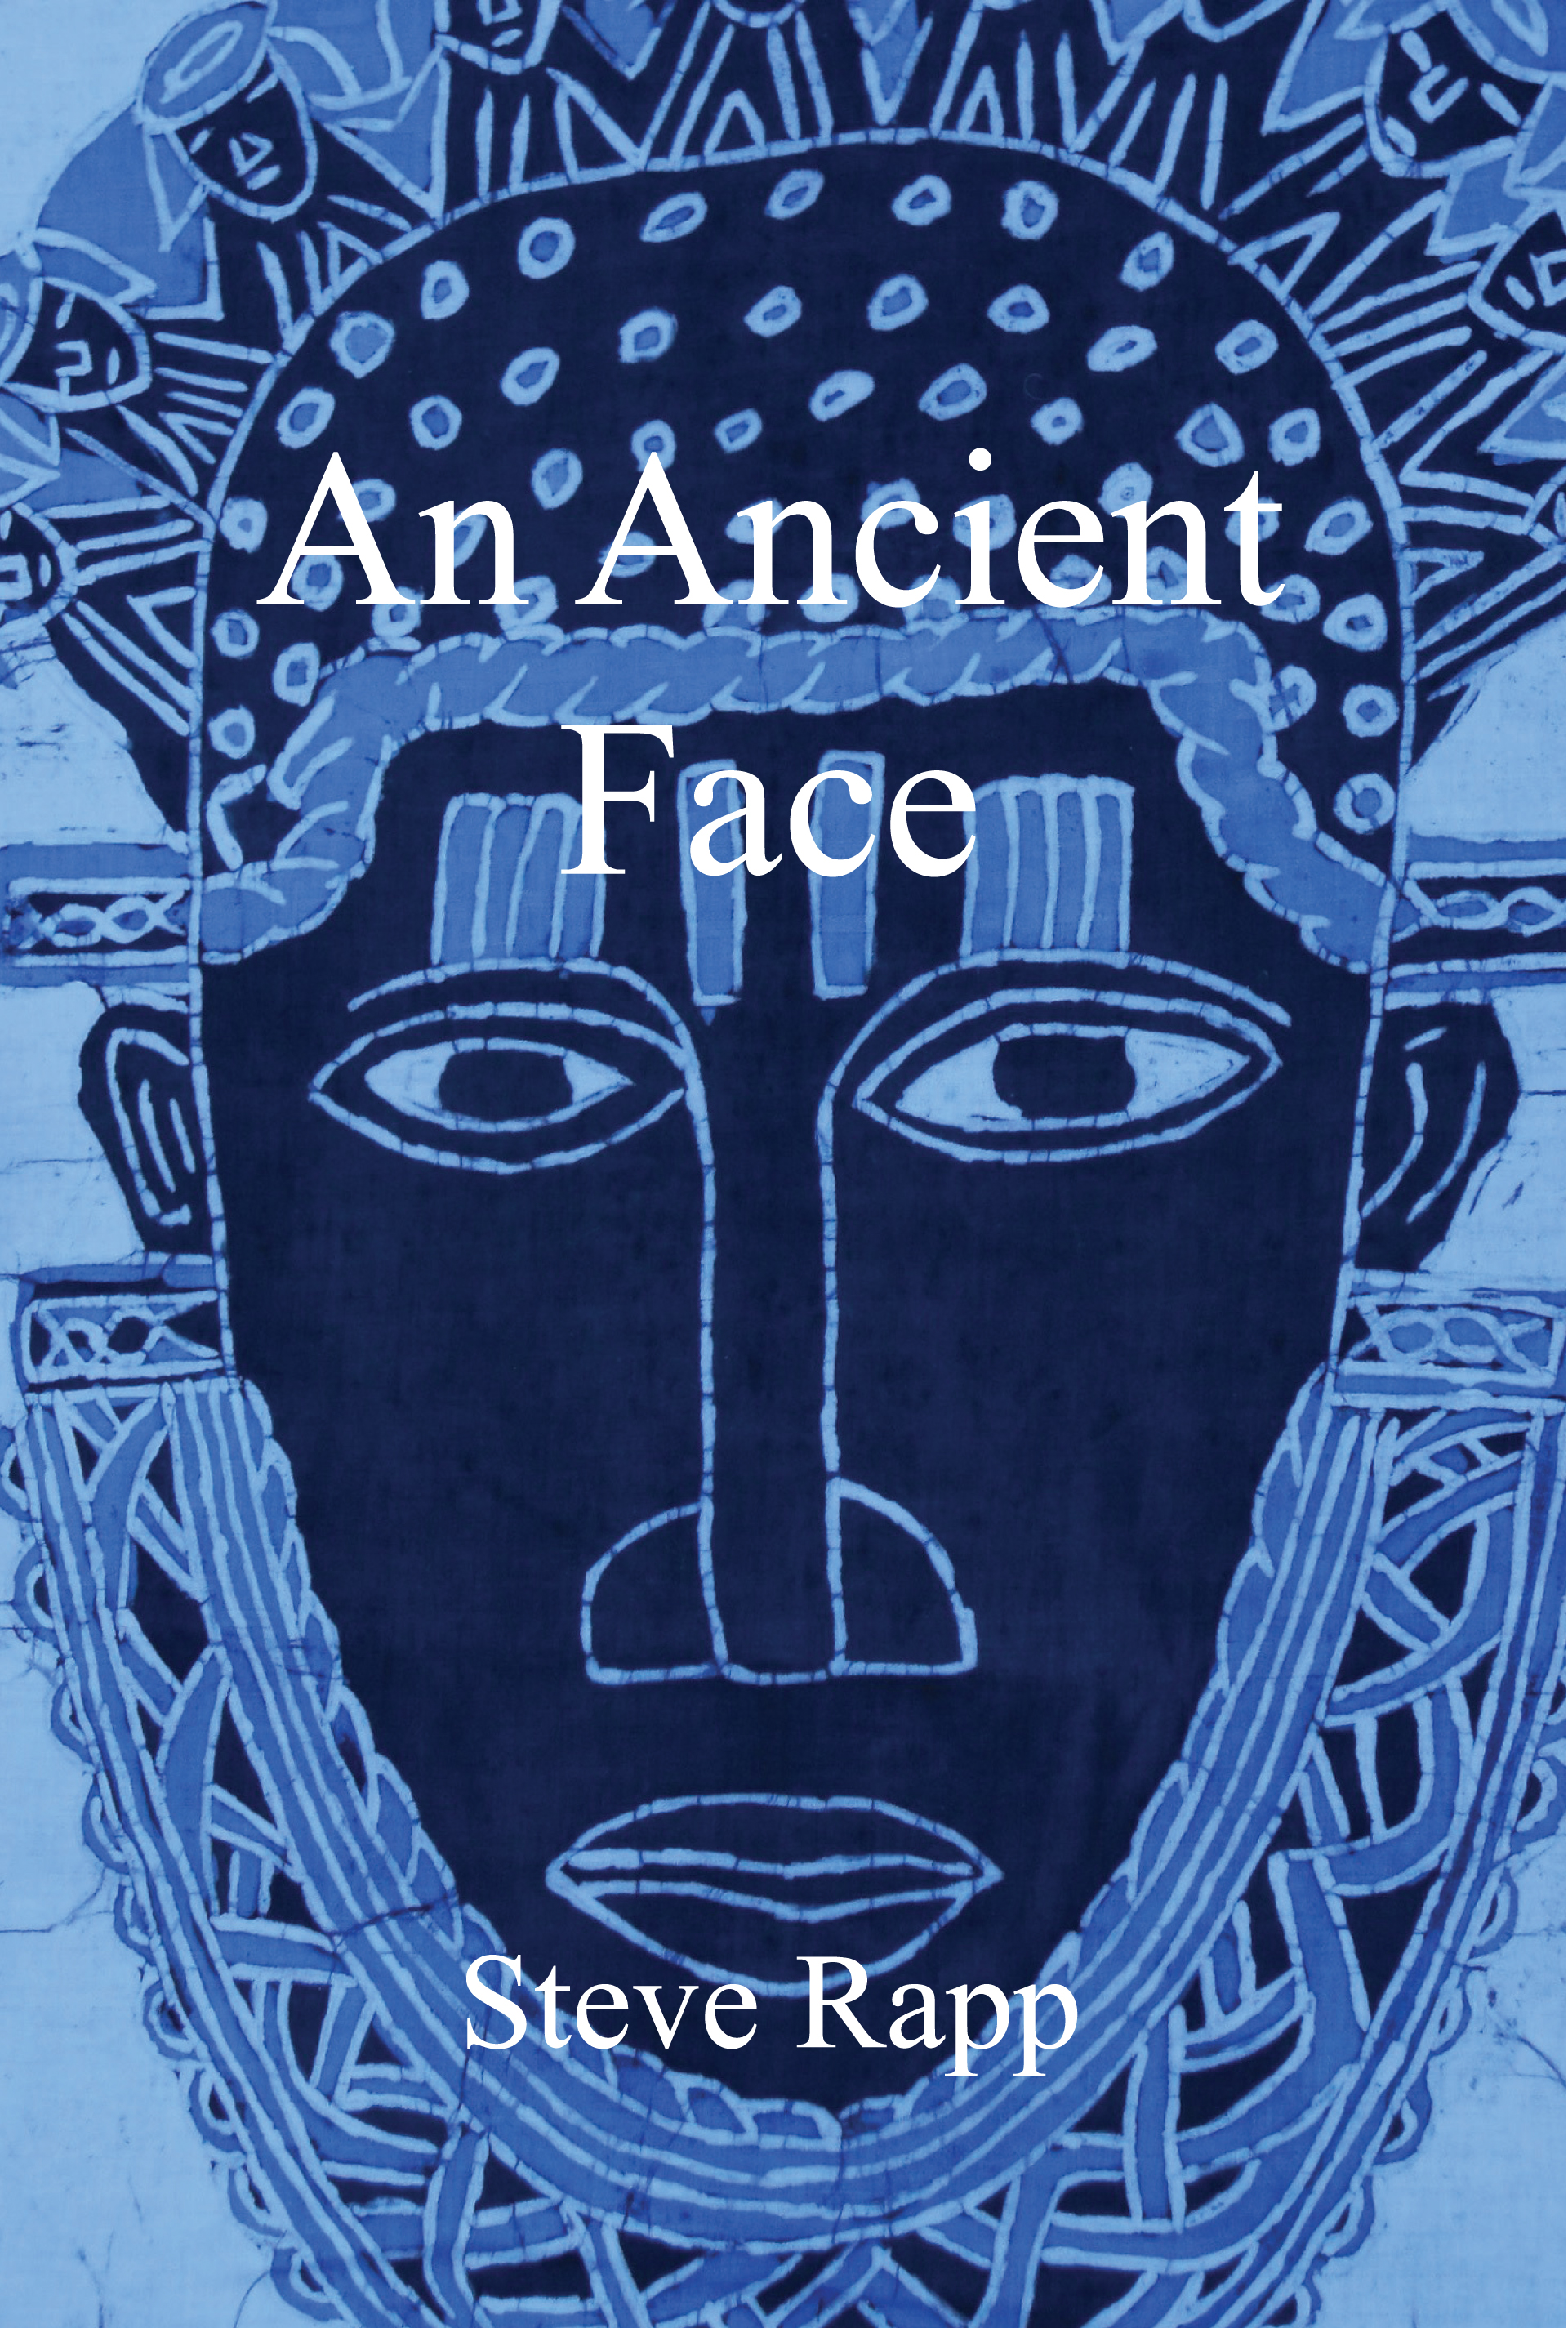 An Ancient Face